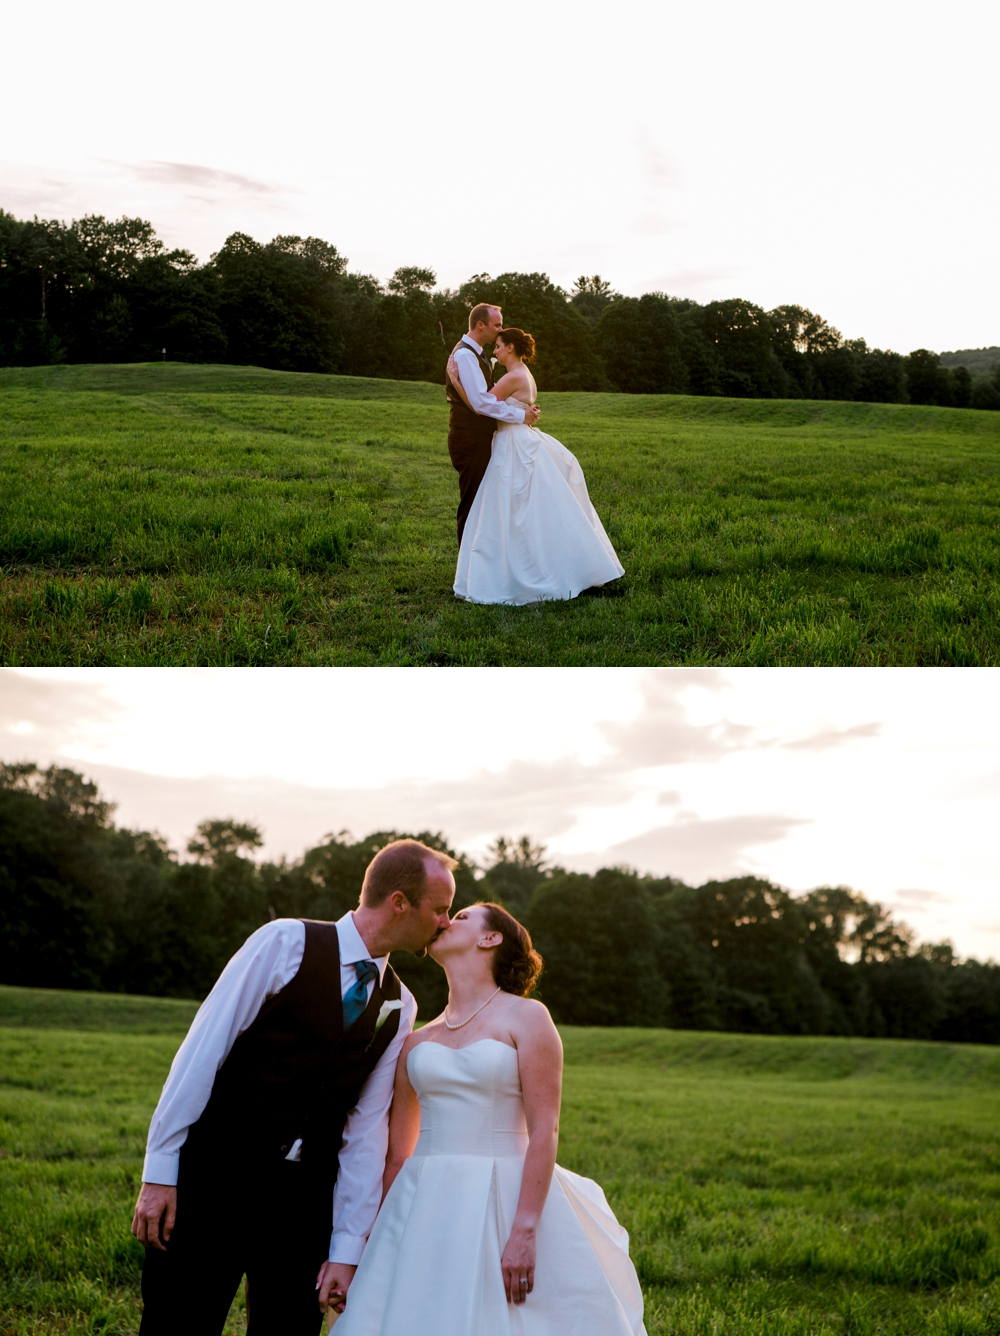 SomerbyJonesPhotography__VermontWedding_VTWedding_BackyardVermontWedding_0046.jpg